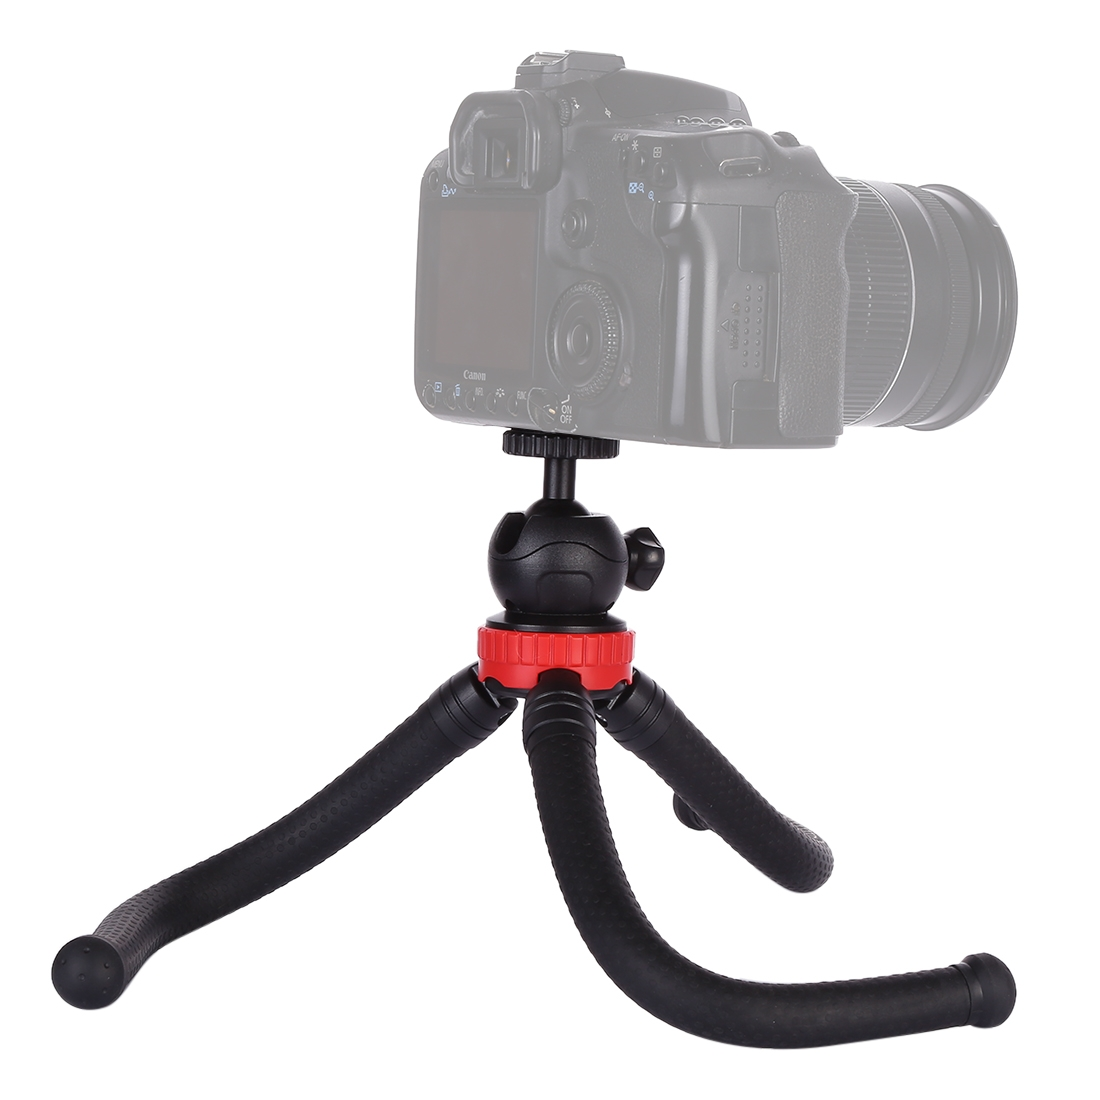 GoPro Size:30cmx5cm Durable Cellphone Mini Octopus Flexible Tripod Holder with Ball Head for SLR Cameras